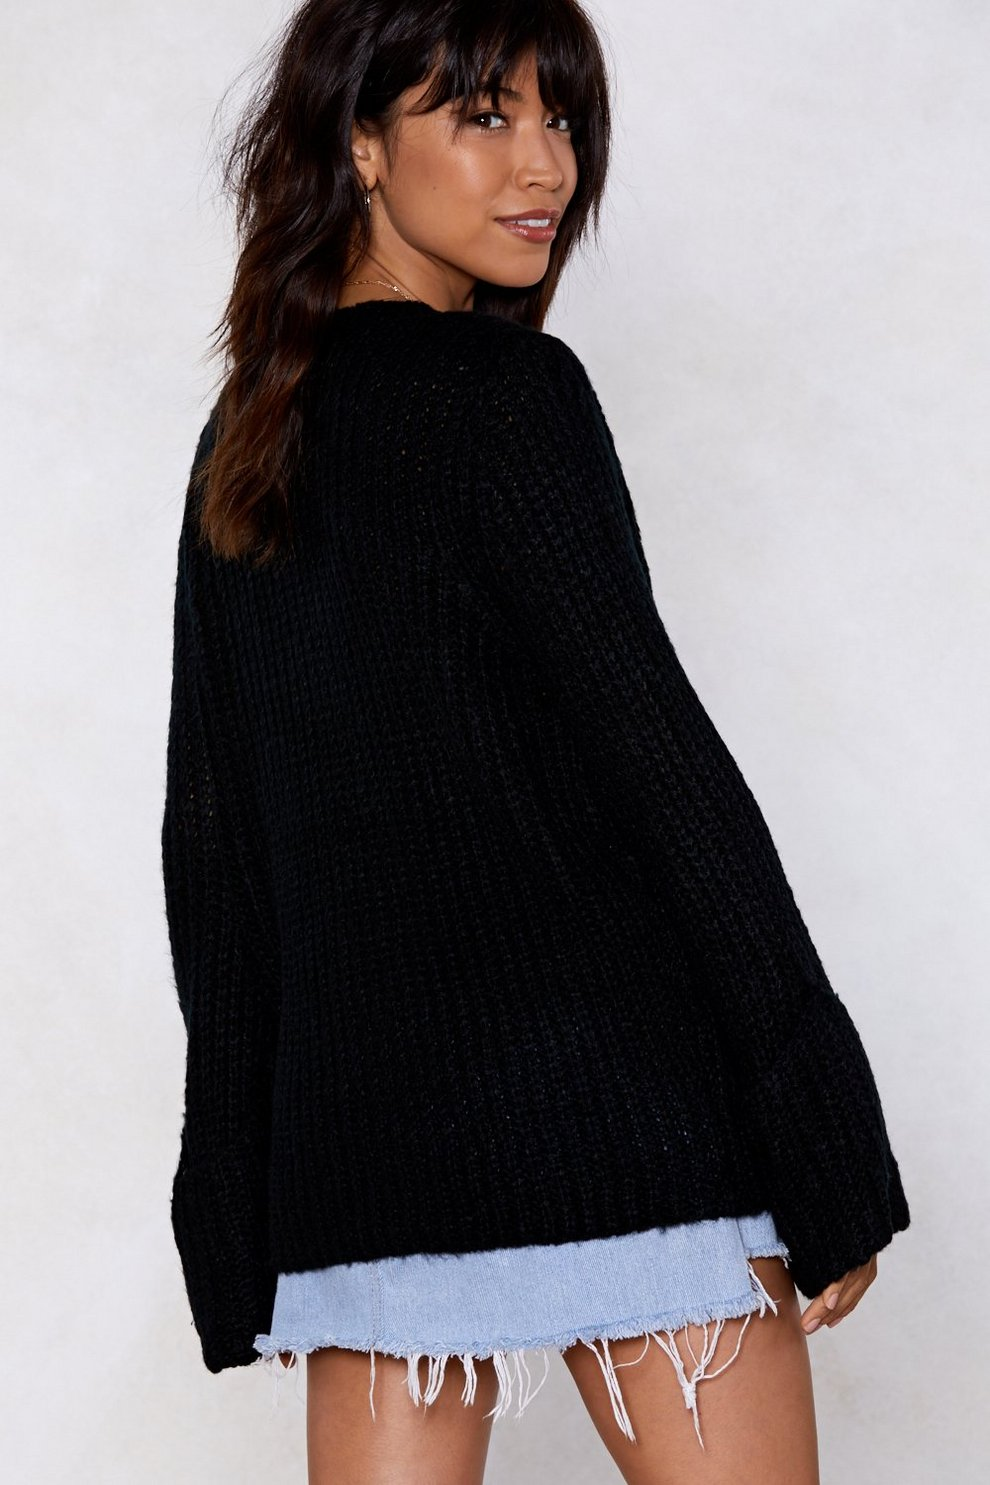 Knit Flix And Chill Off The Shoulder Sweater Shop Clothes At Nasty